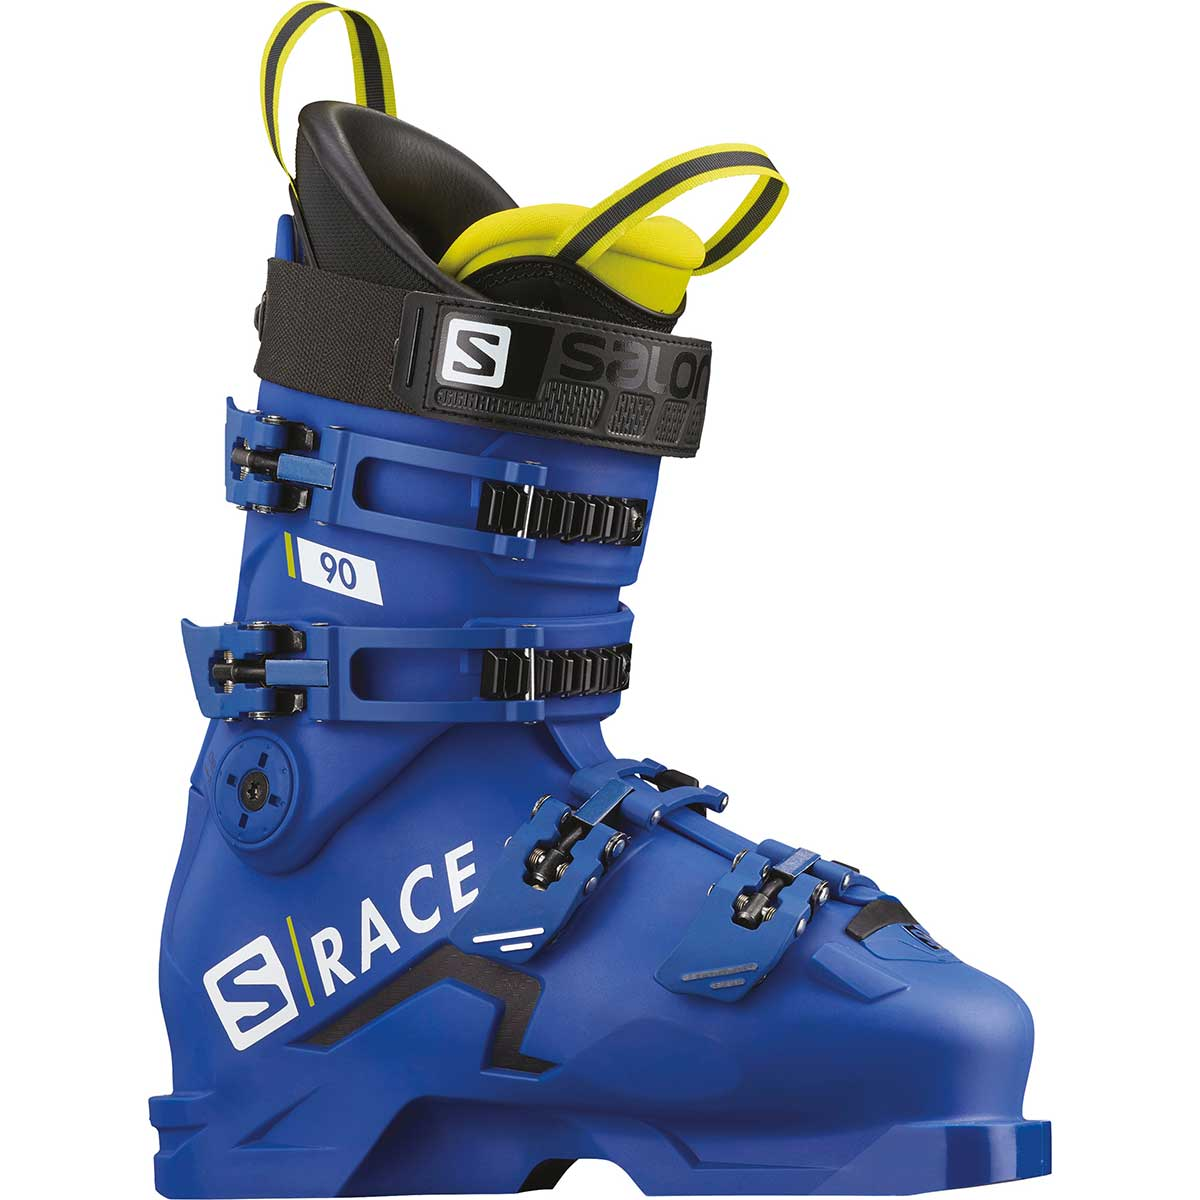 Salomon S/Race 90 ski boot in race blue